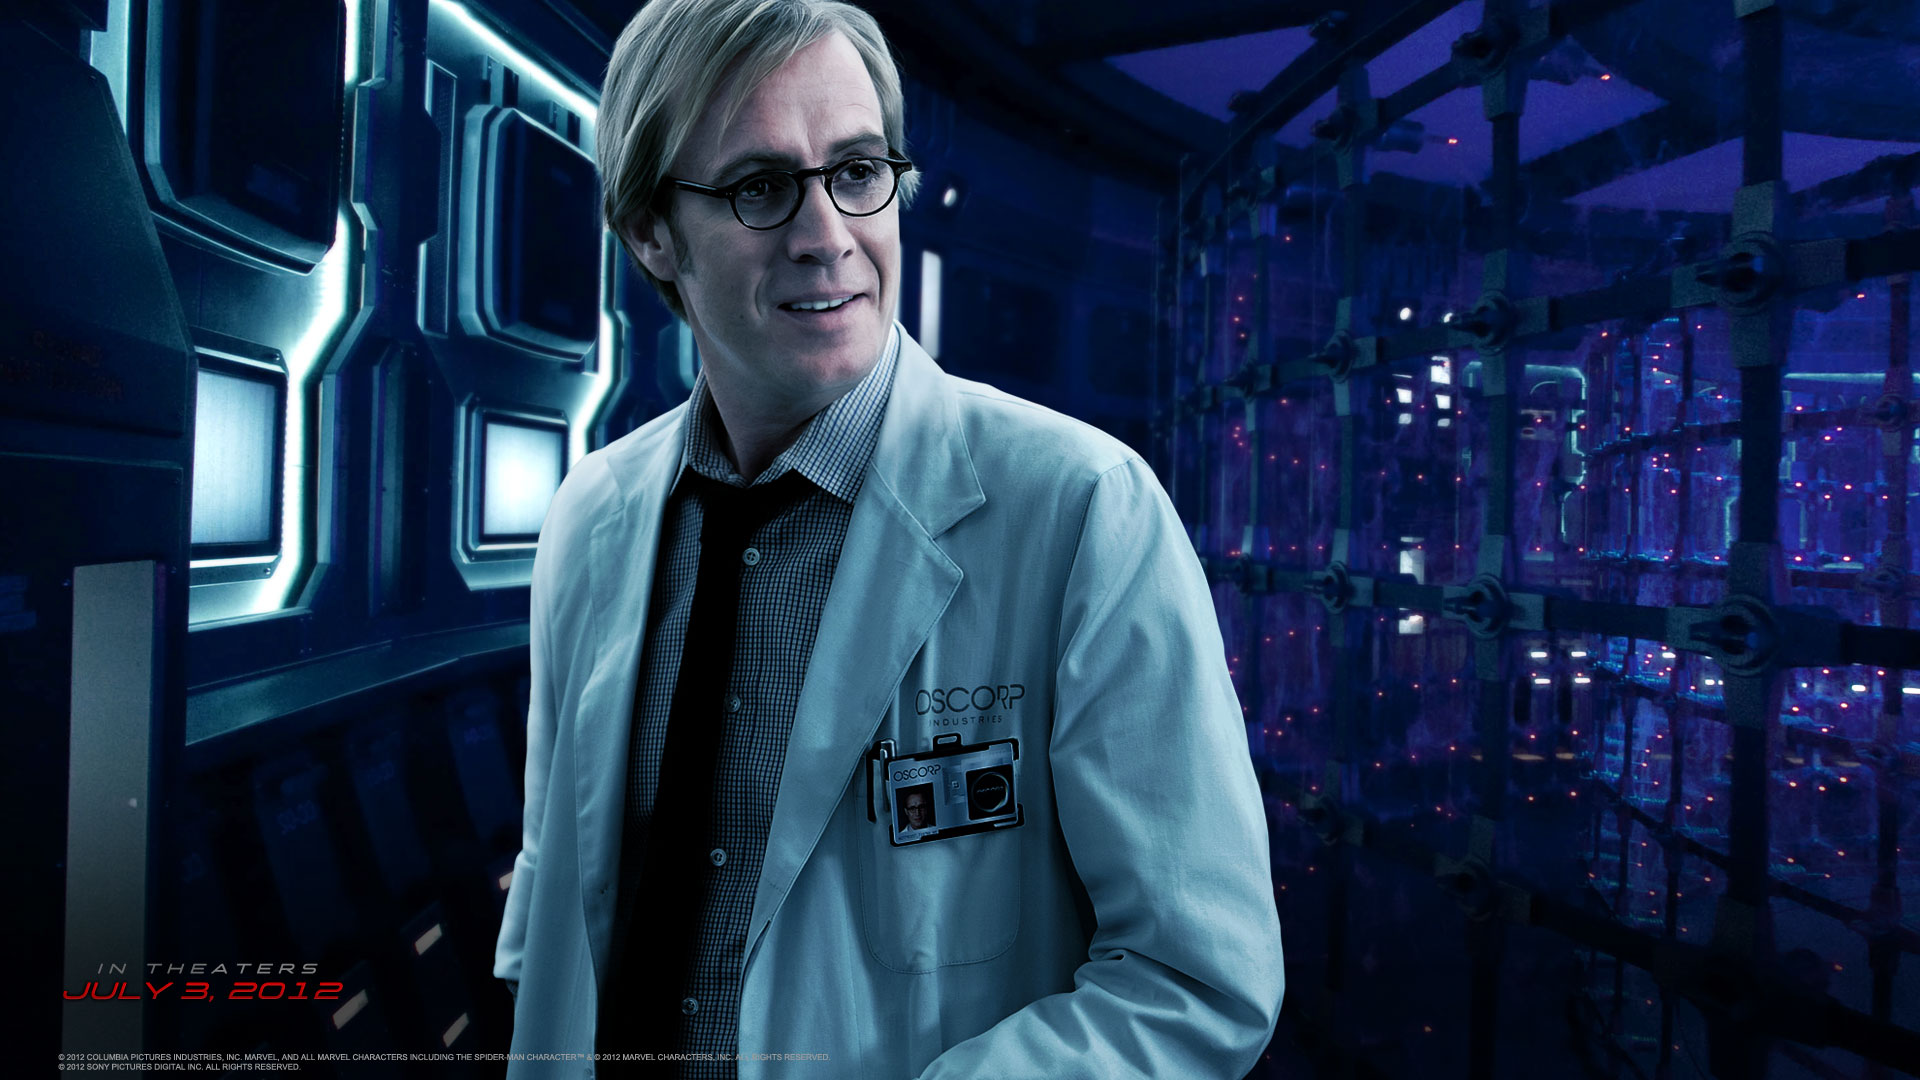 Rhys Ifans and Dr Connors in The Amazing Spider-man